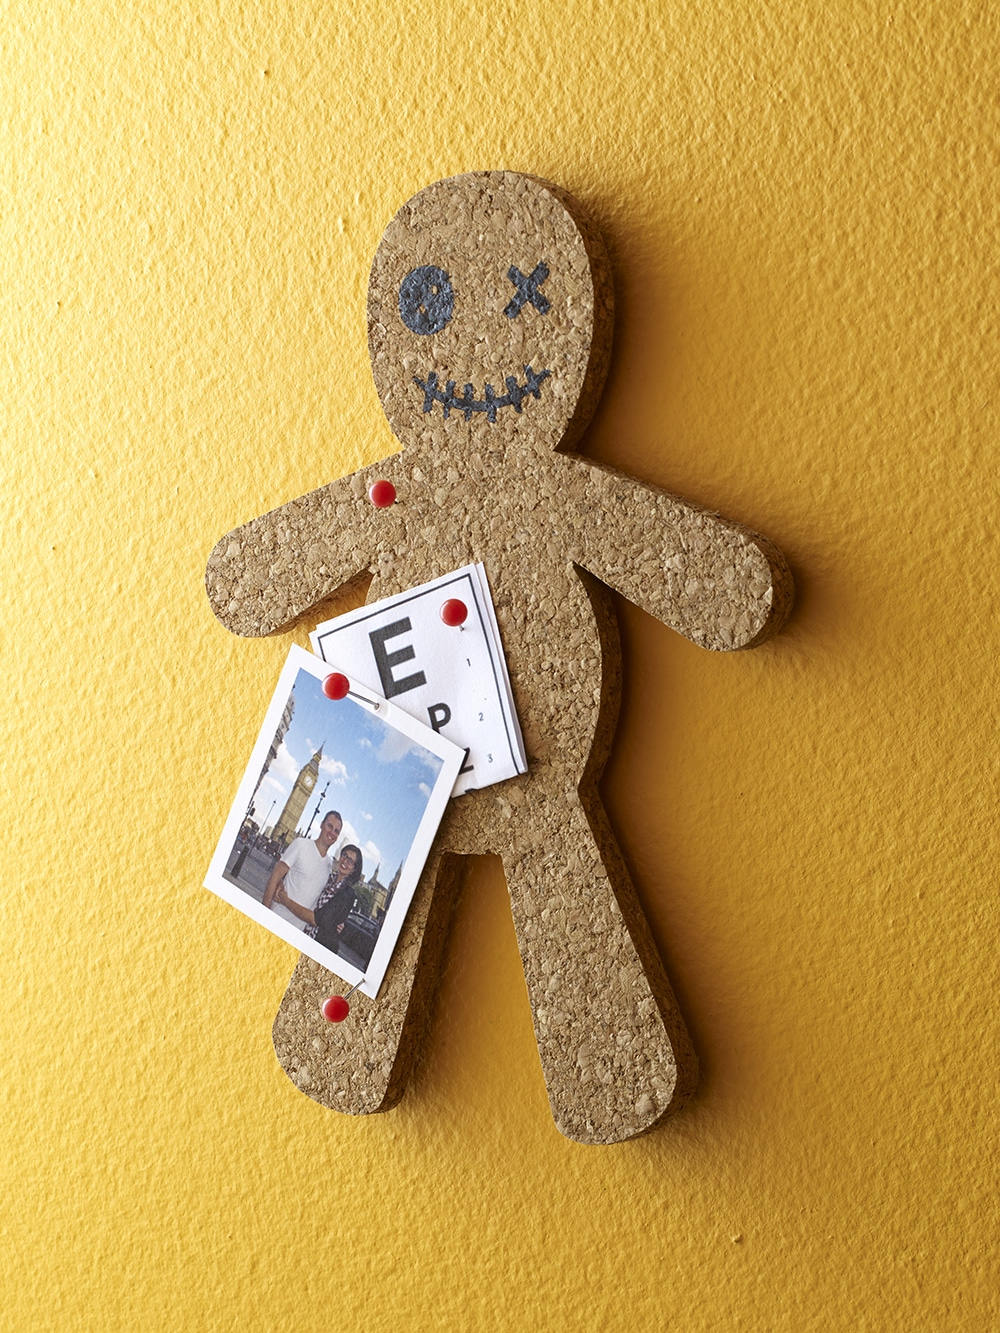 Voodoo_Corkboard_design_ideas